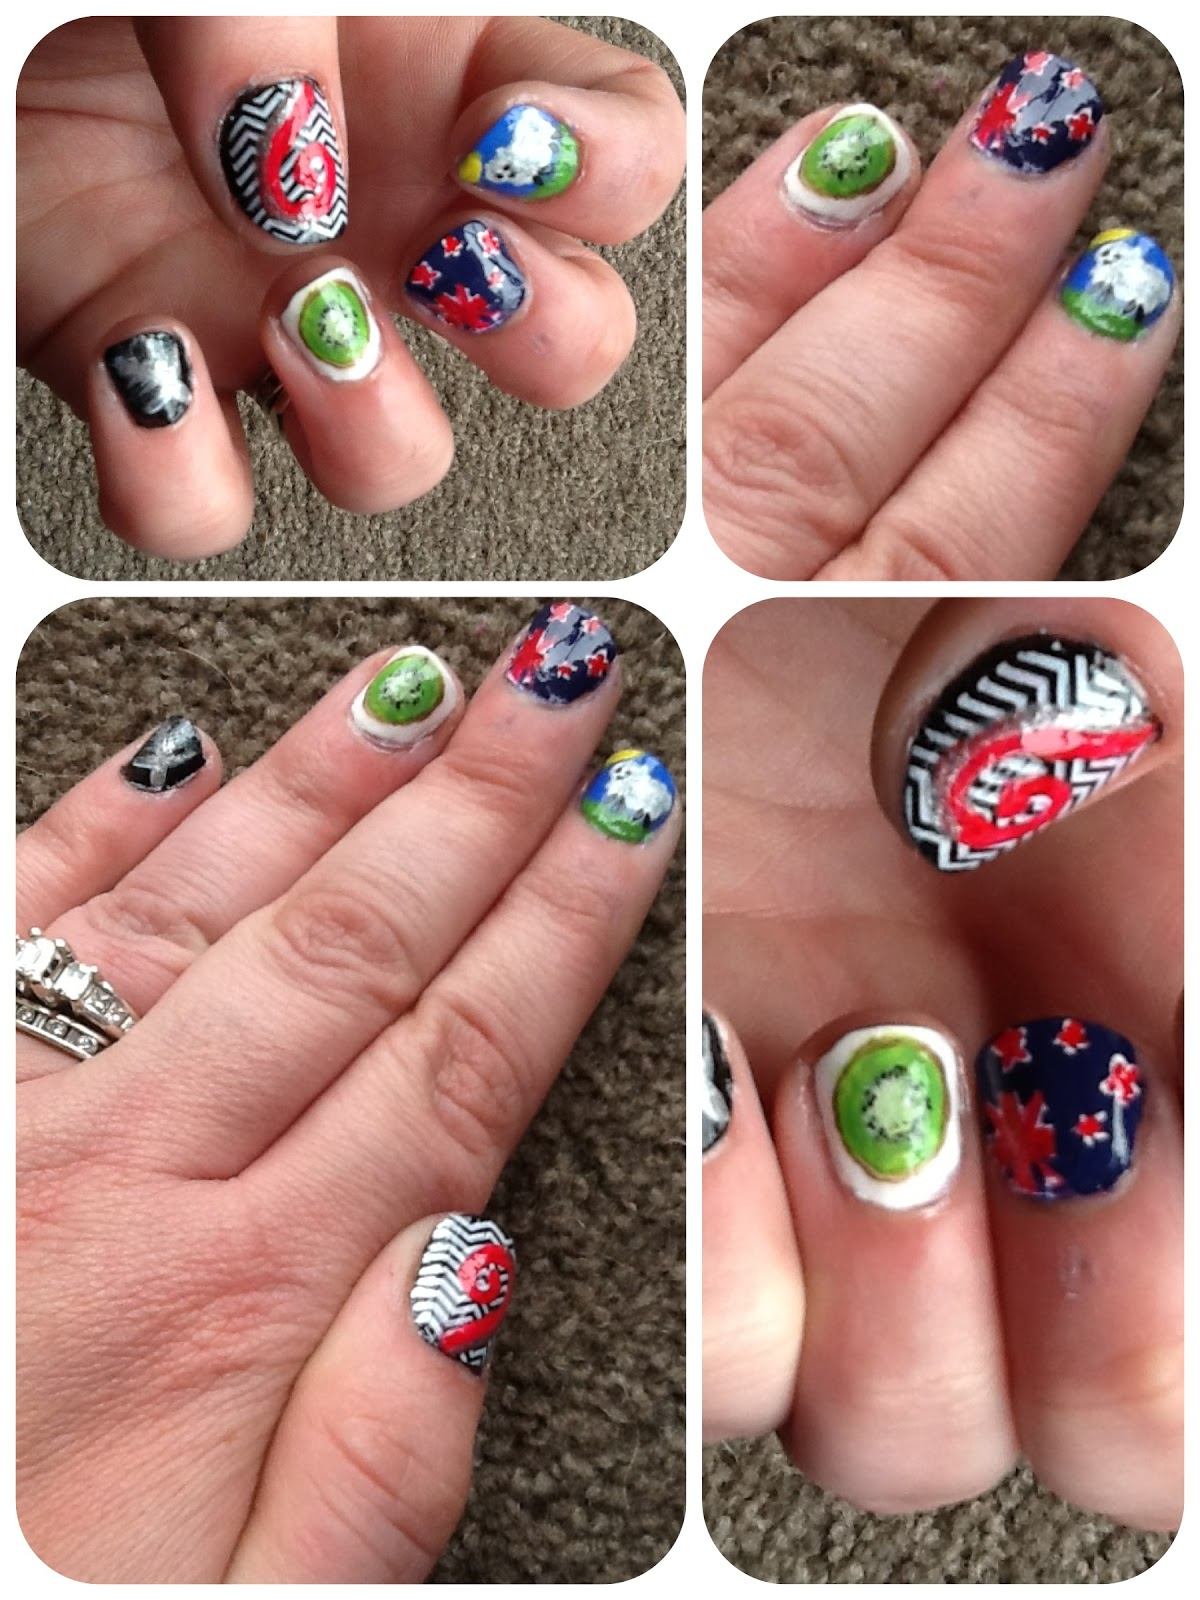 Nz nail art competition winner prinsesfo Images